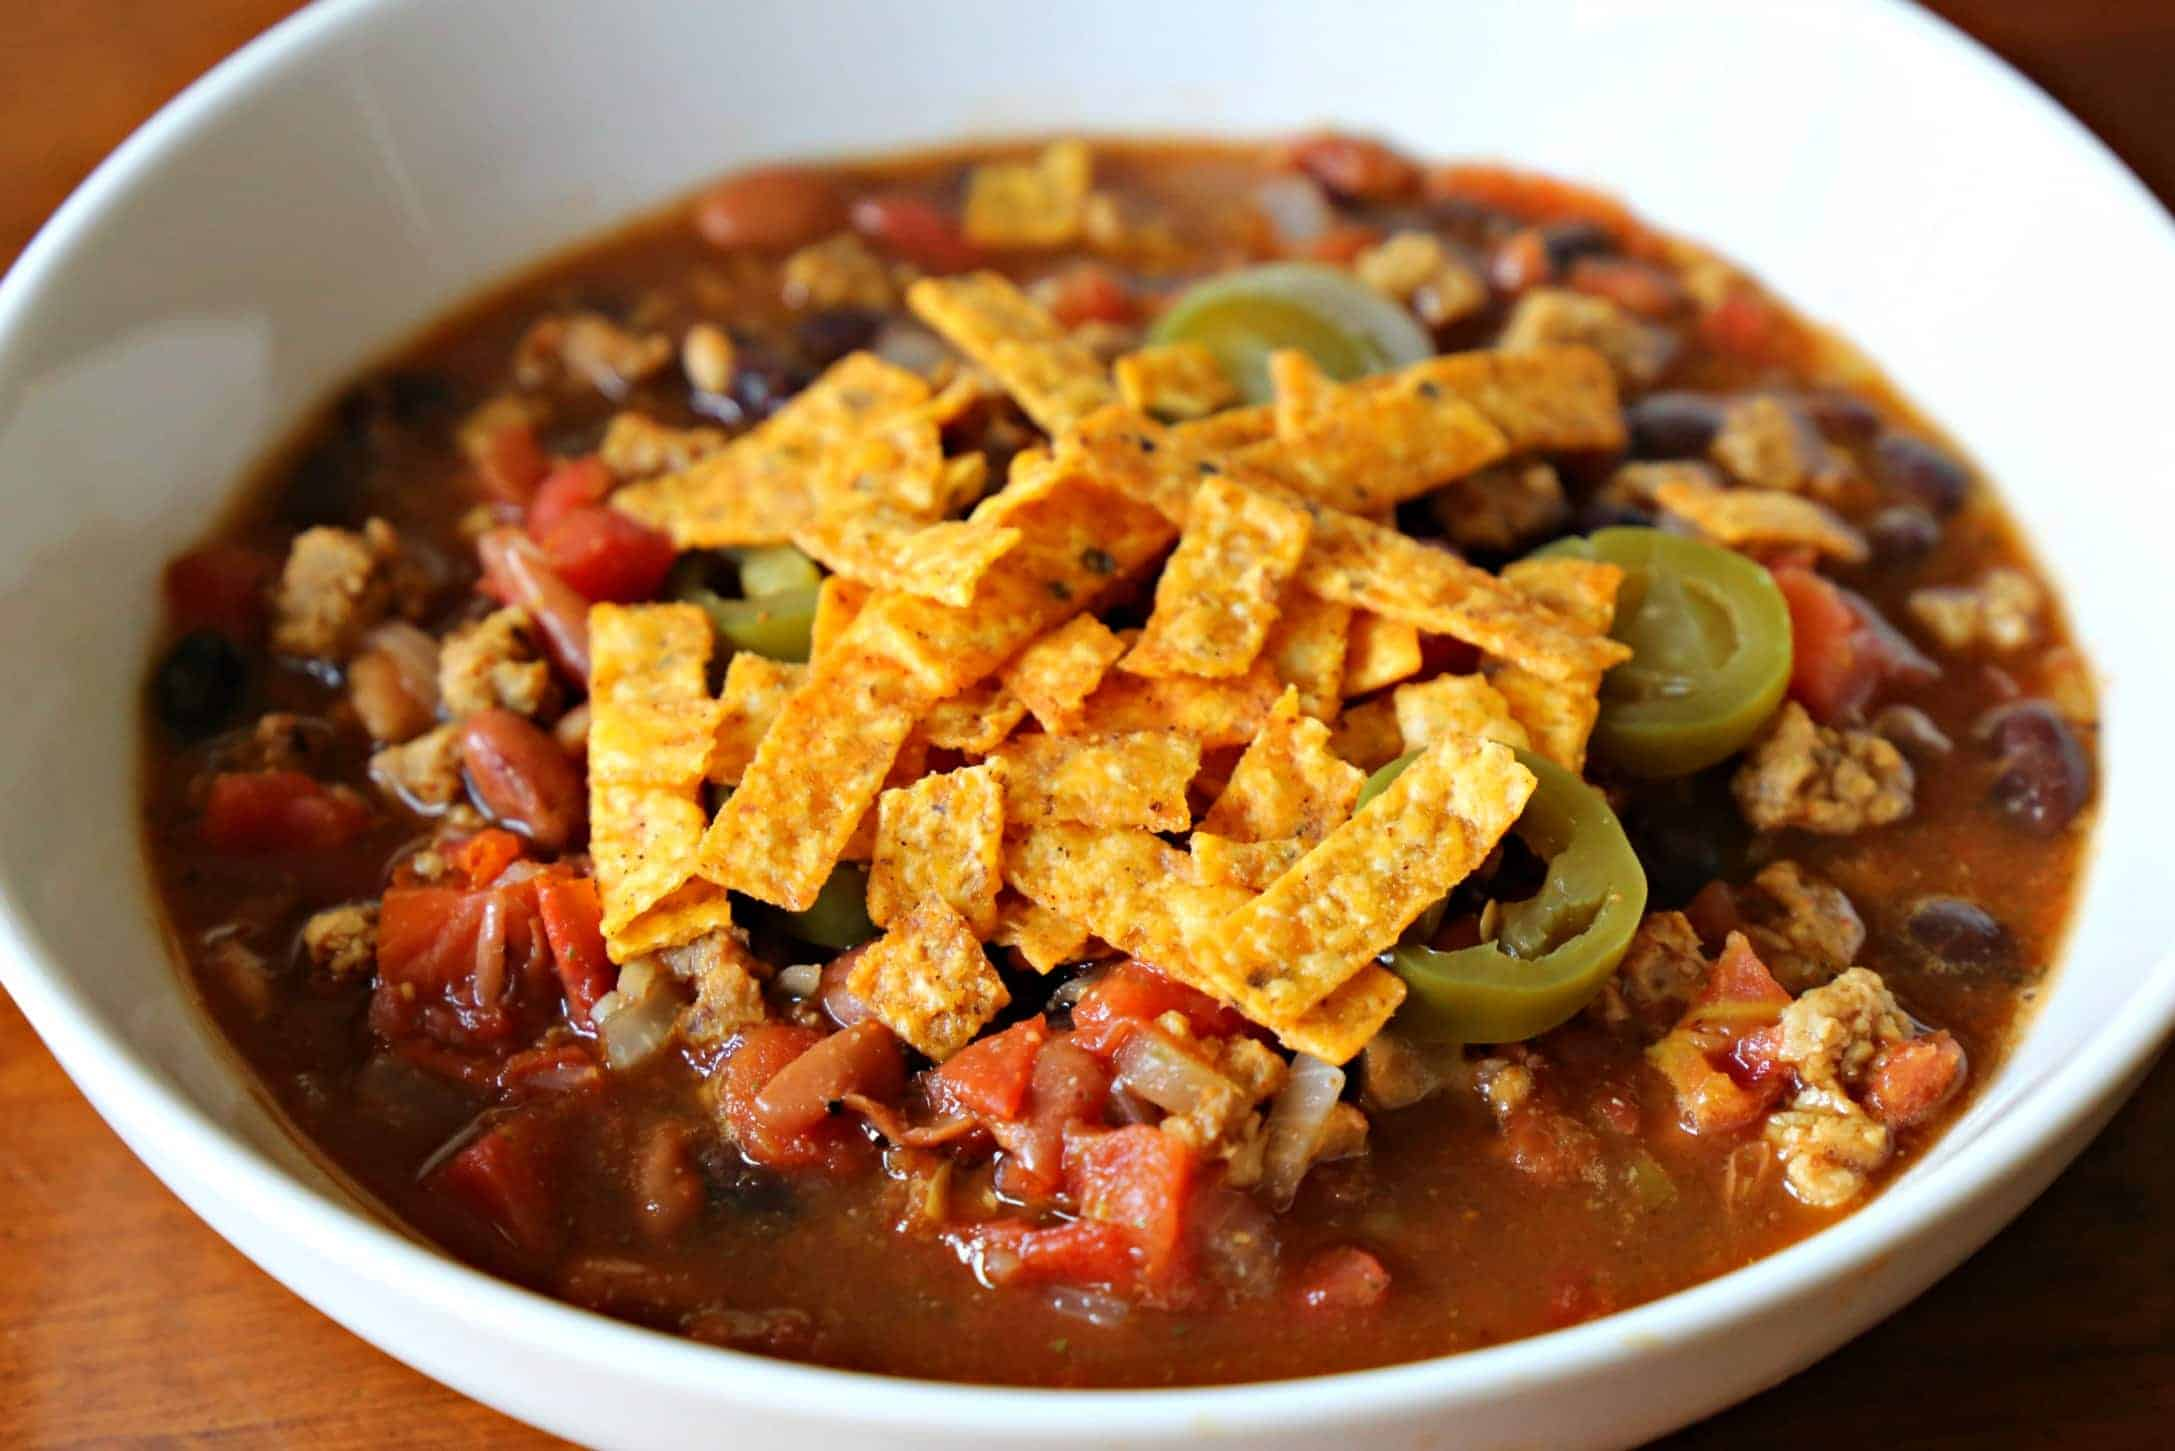 Bowl of taco soup with tortilla strips and jalapenos.